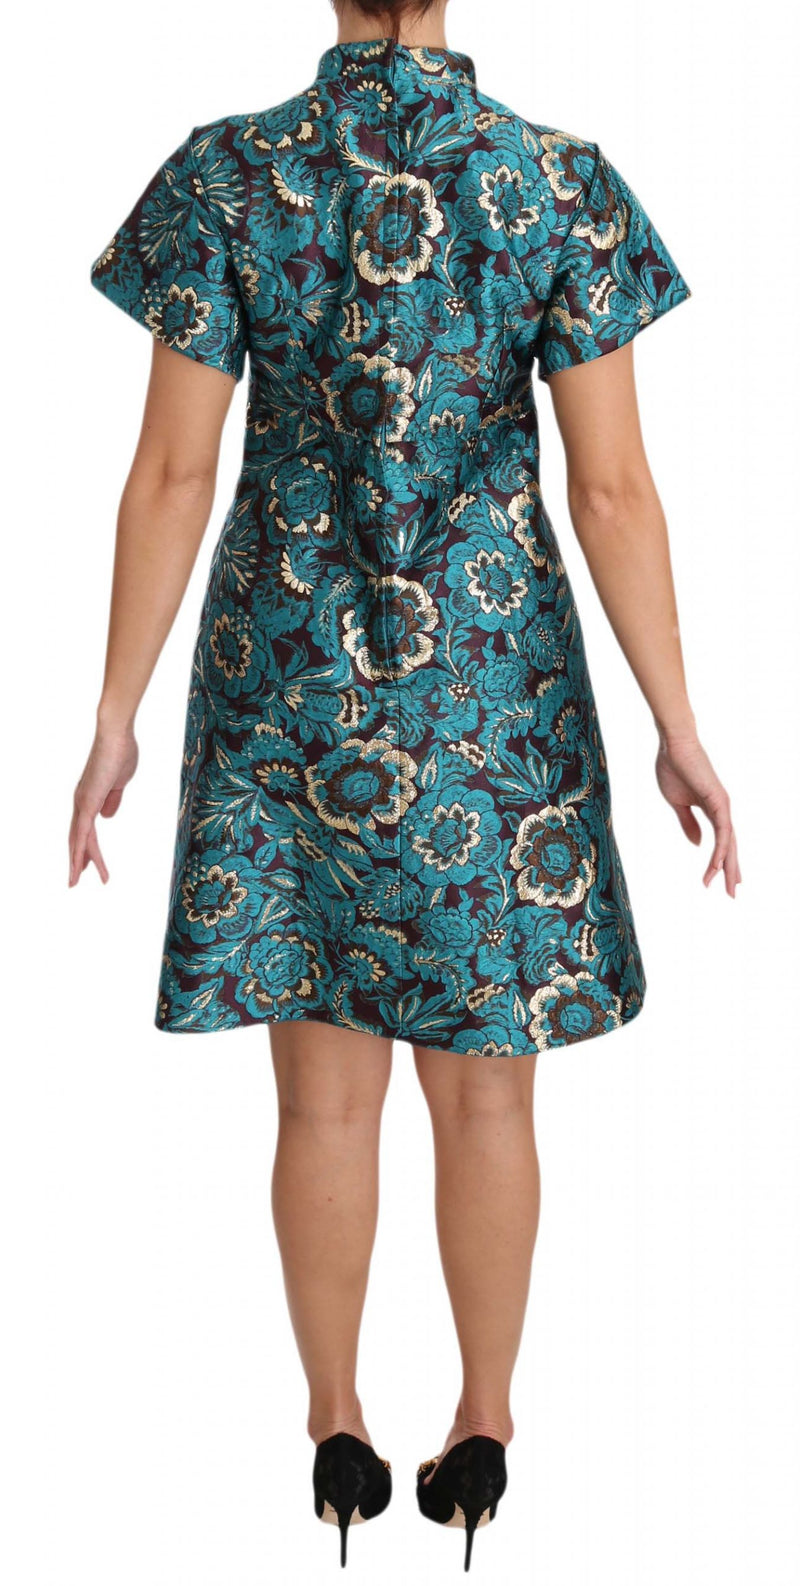 Blue Floral Jacquard Crystal A-Line Dress